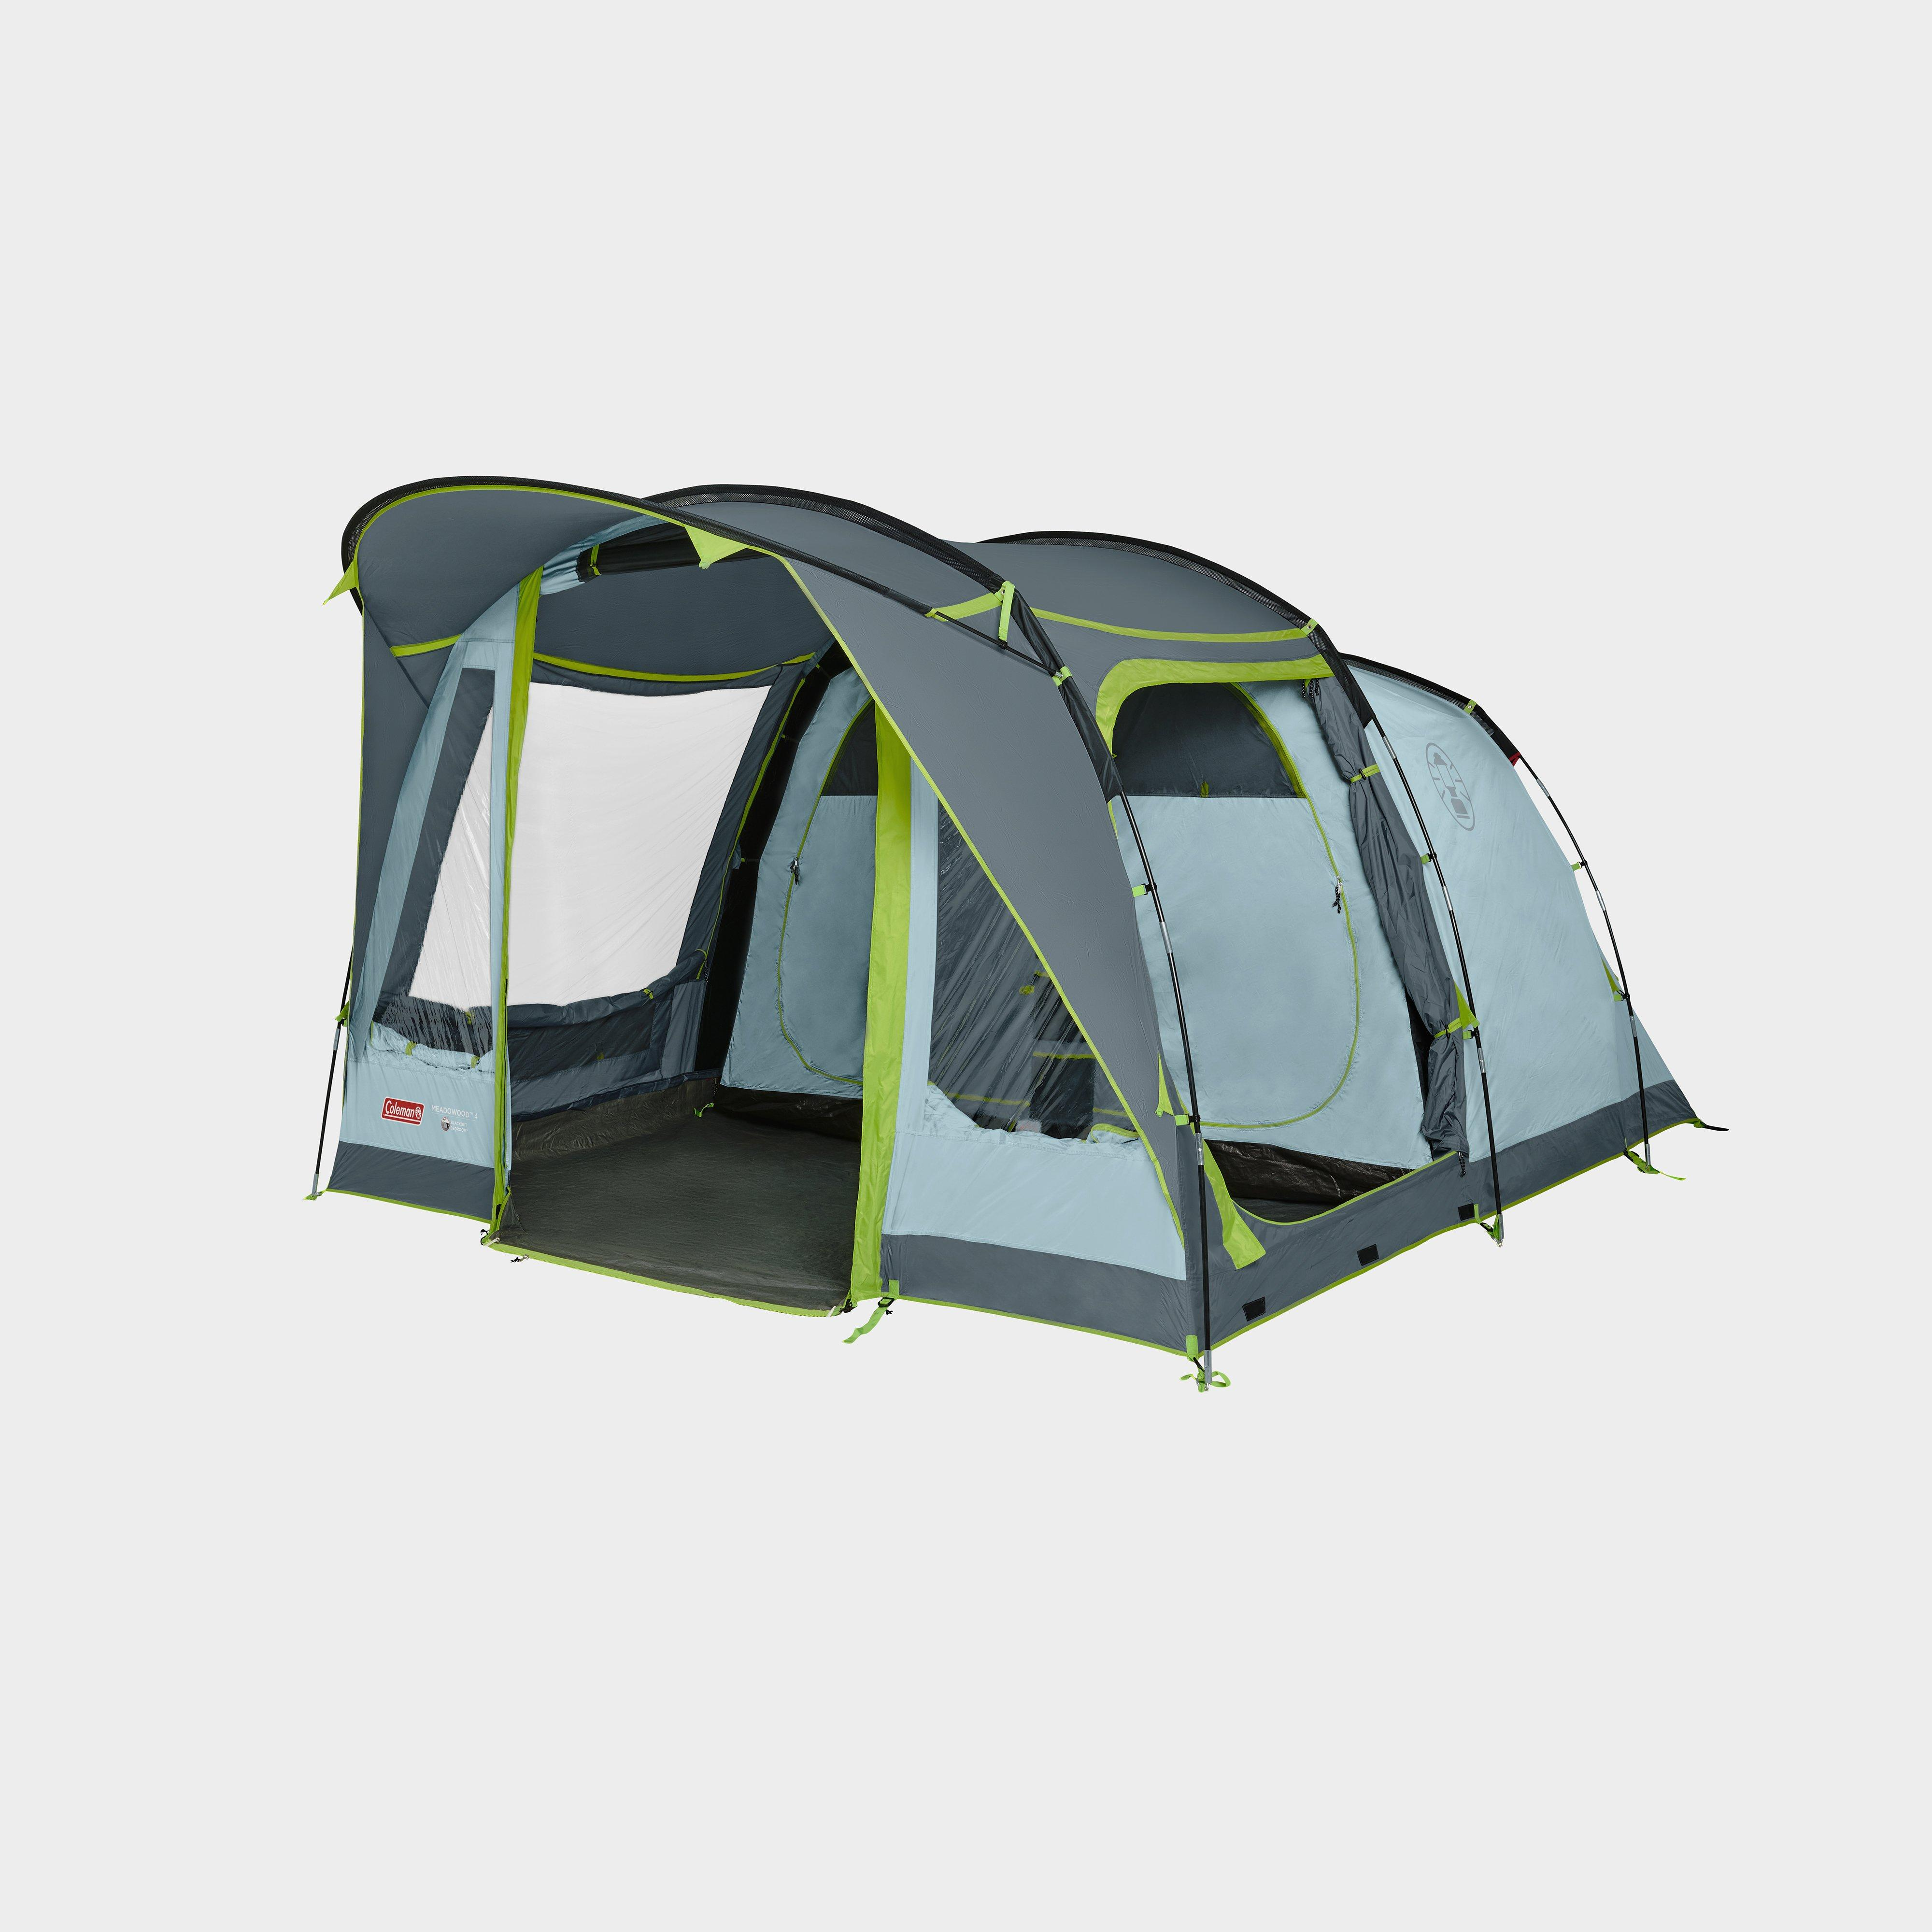 Coleman Meadowood 4 Person Tent With Blackout Bedrooms - Blue/Blu, Blue/BLU